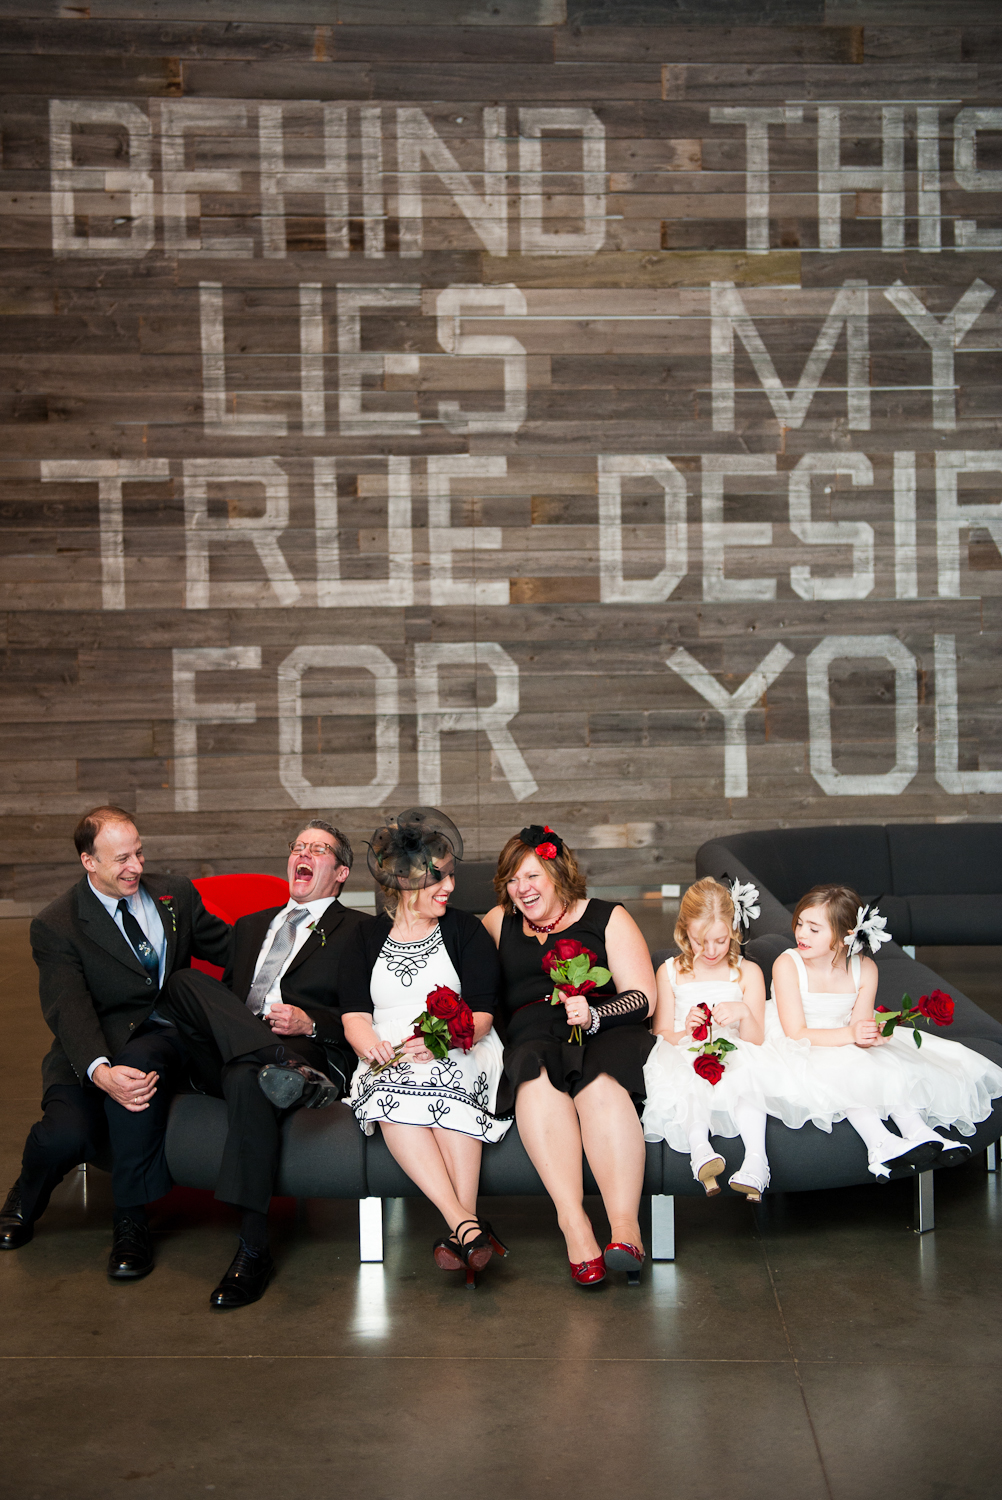 sean-williams-wedding-lifestyle-photography-edmonton-photographer-professional-35.jpg